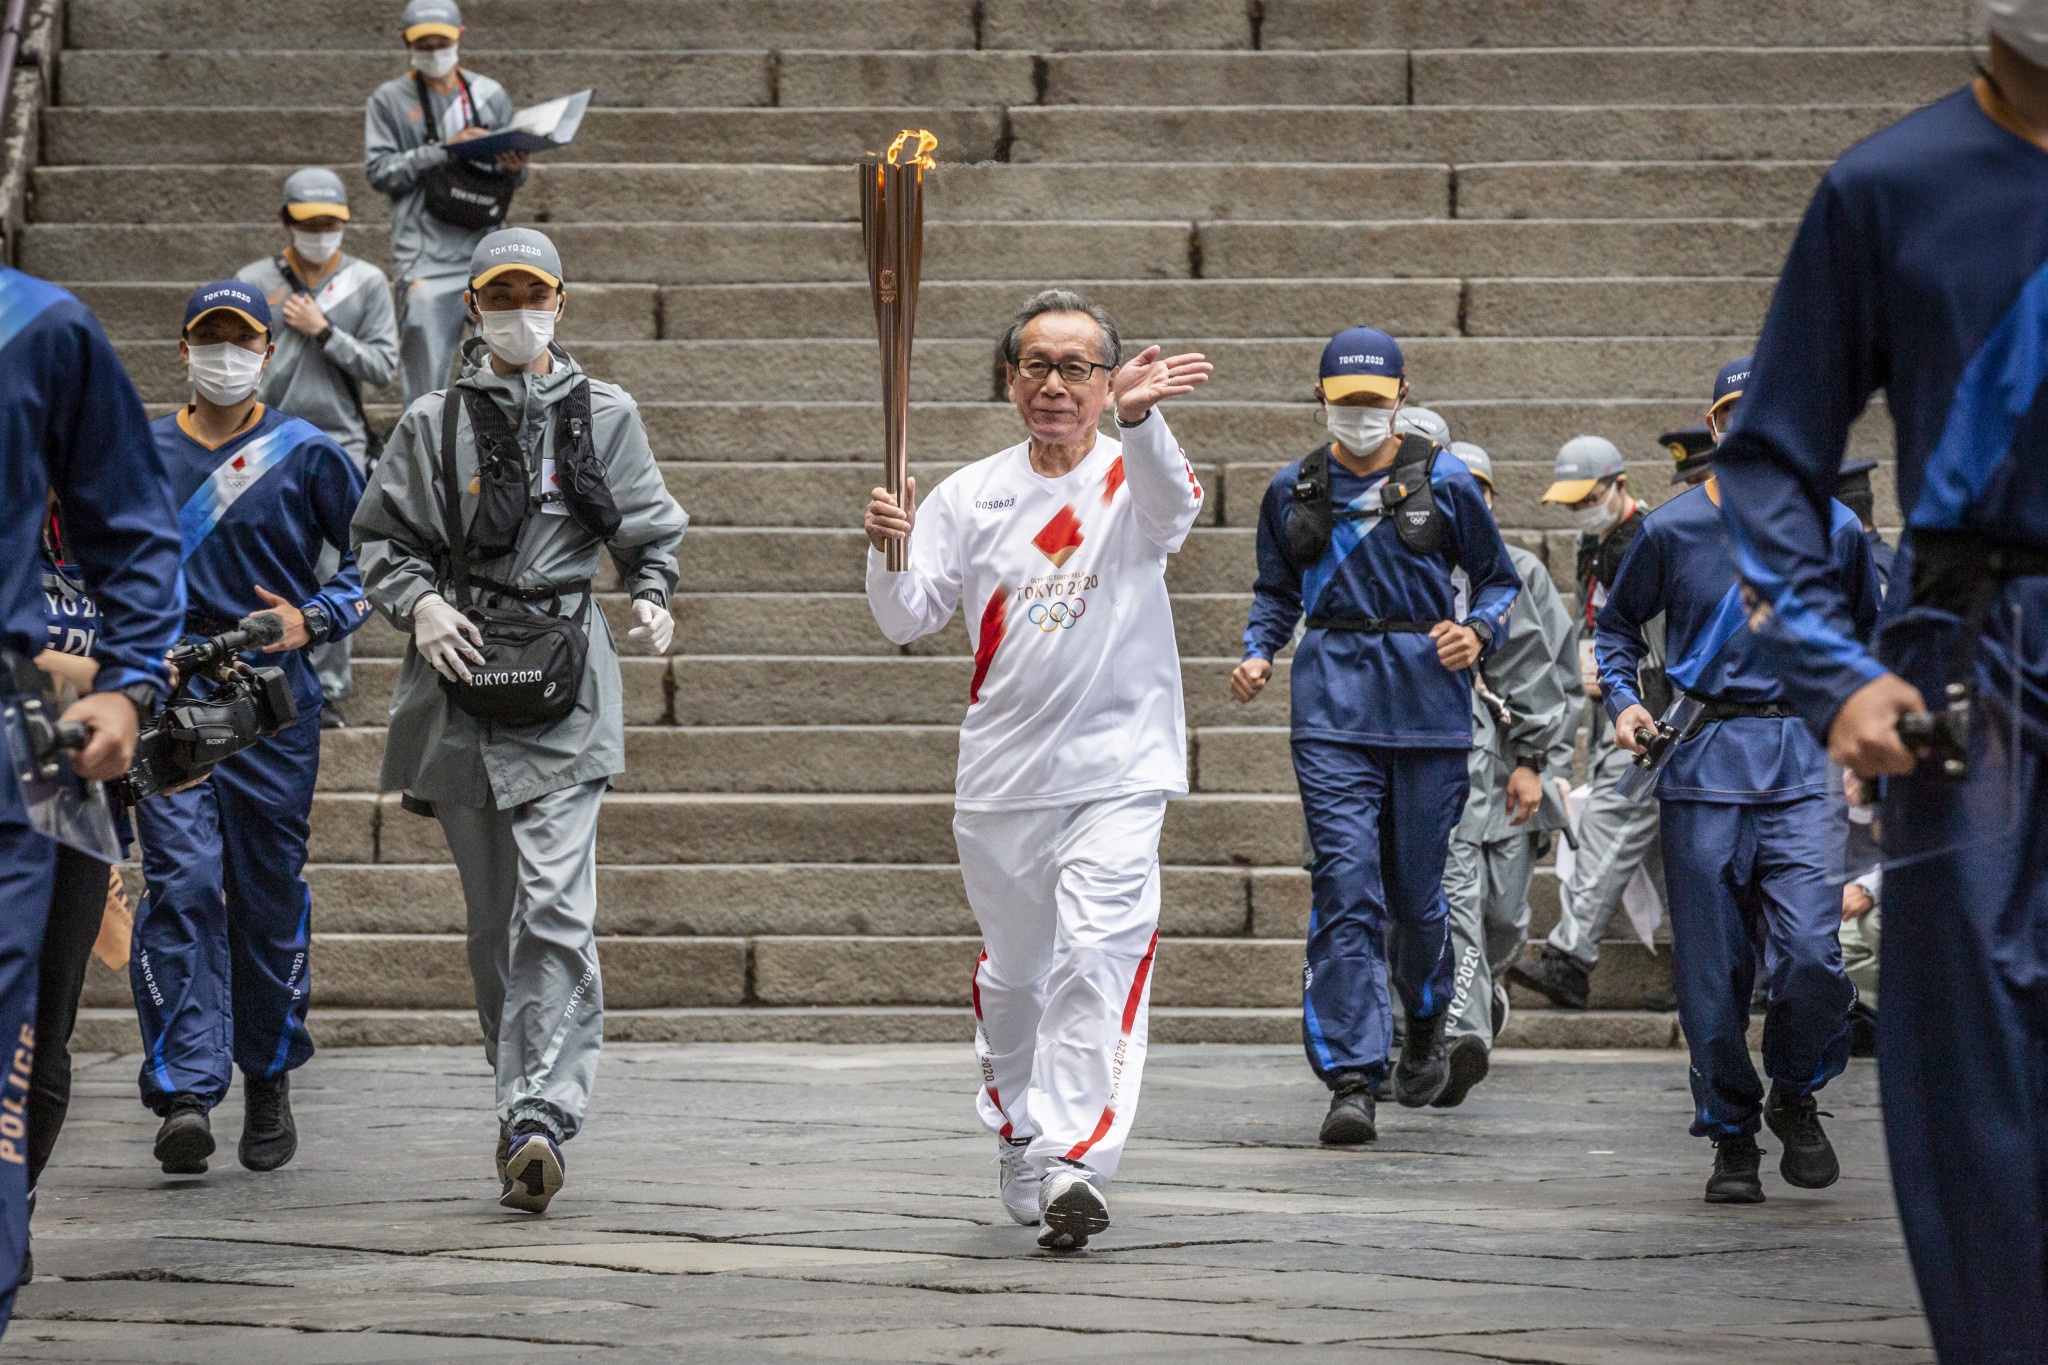 Olympic Torch Relay leg in Osaka cancelled due to rise in COVID-19 cases